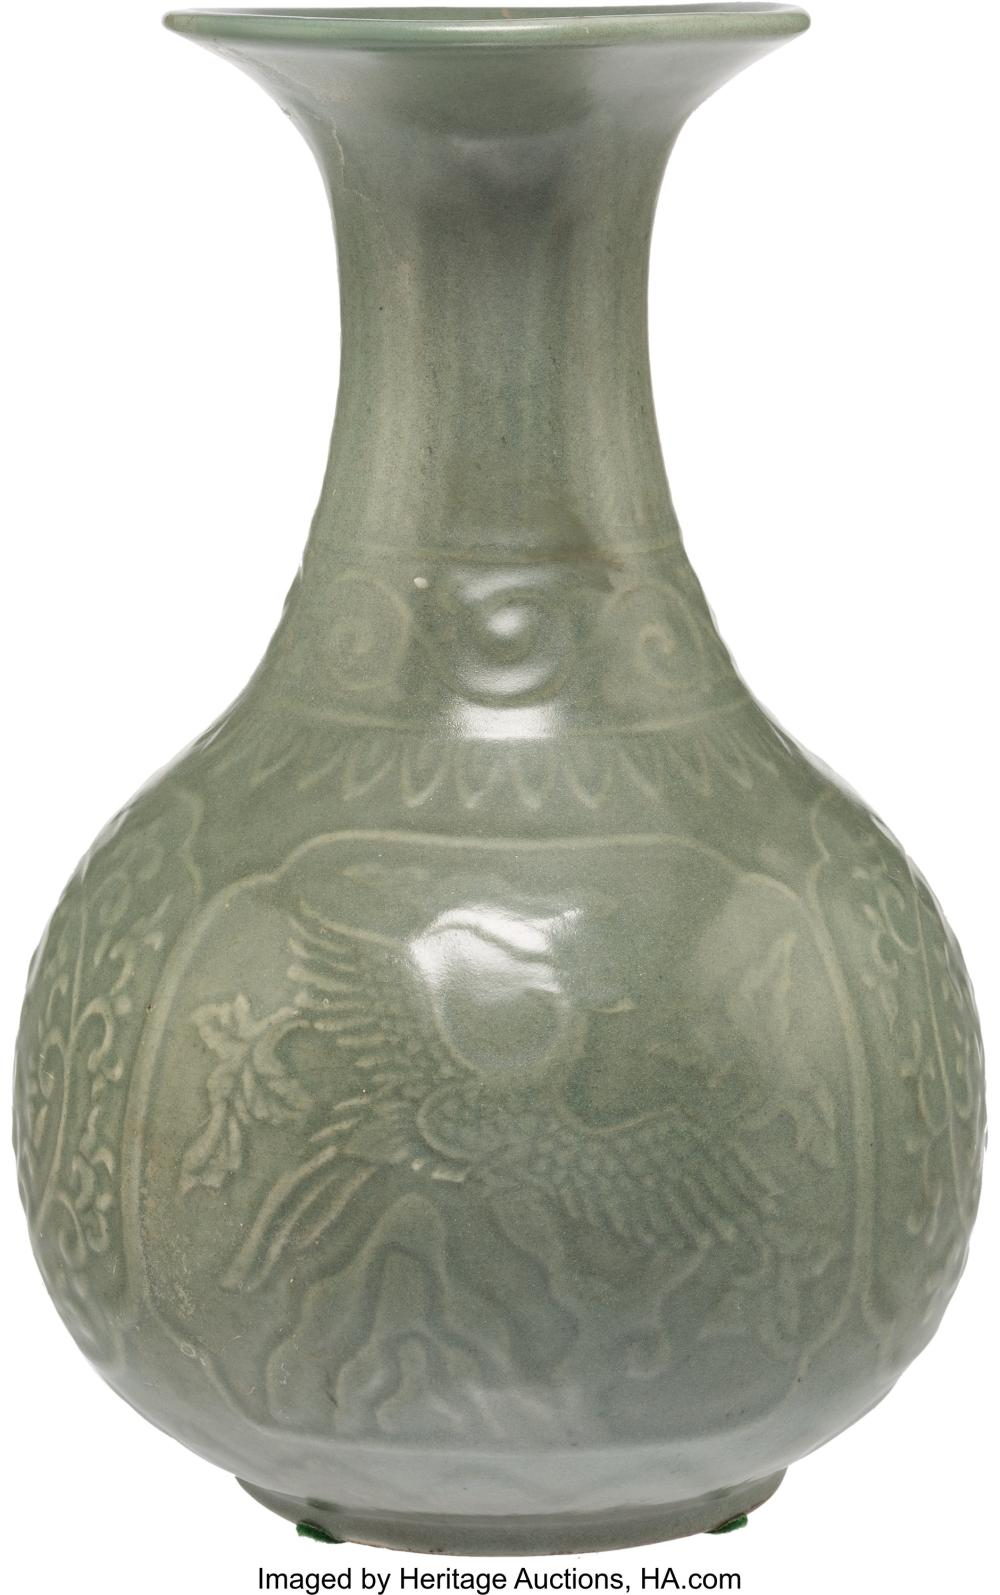 Lot 21302: A Chinese Celadon Porcelain Yuhuchunping Vase, late Qing Dynasty, Republic Perio